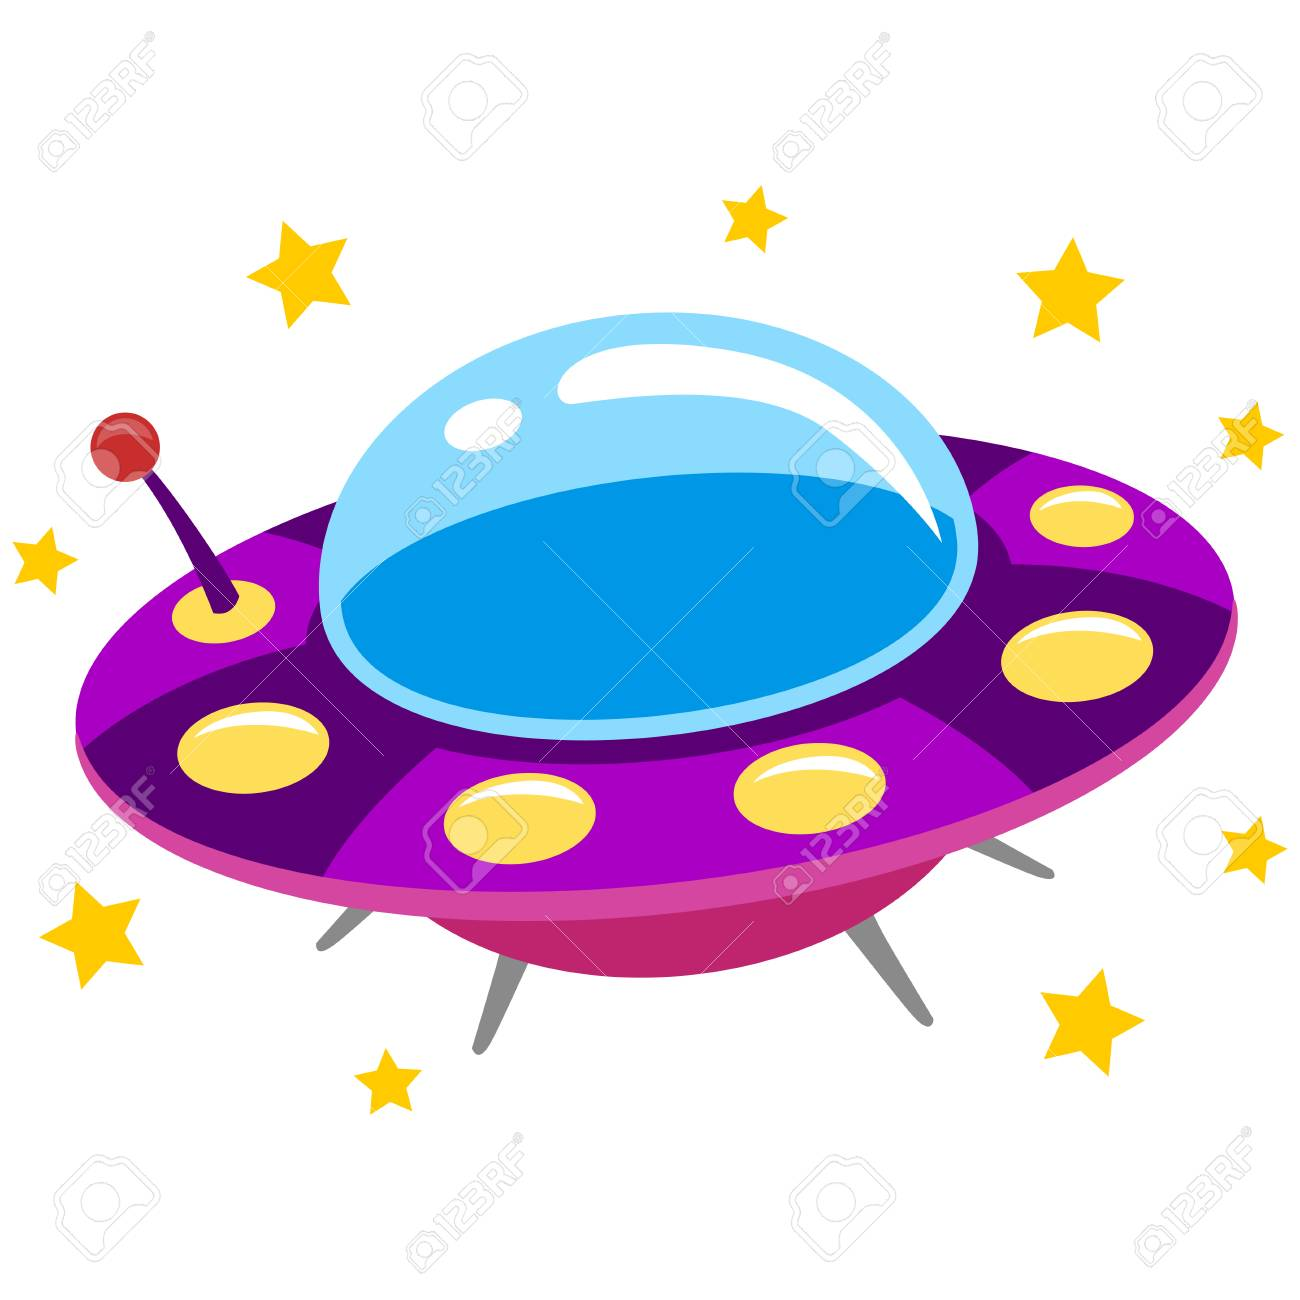 Flying saucer clipart 6 » Clipart Station.